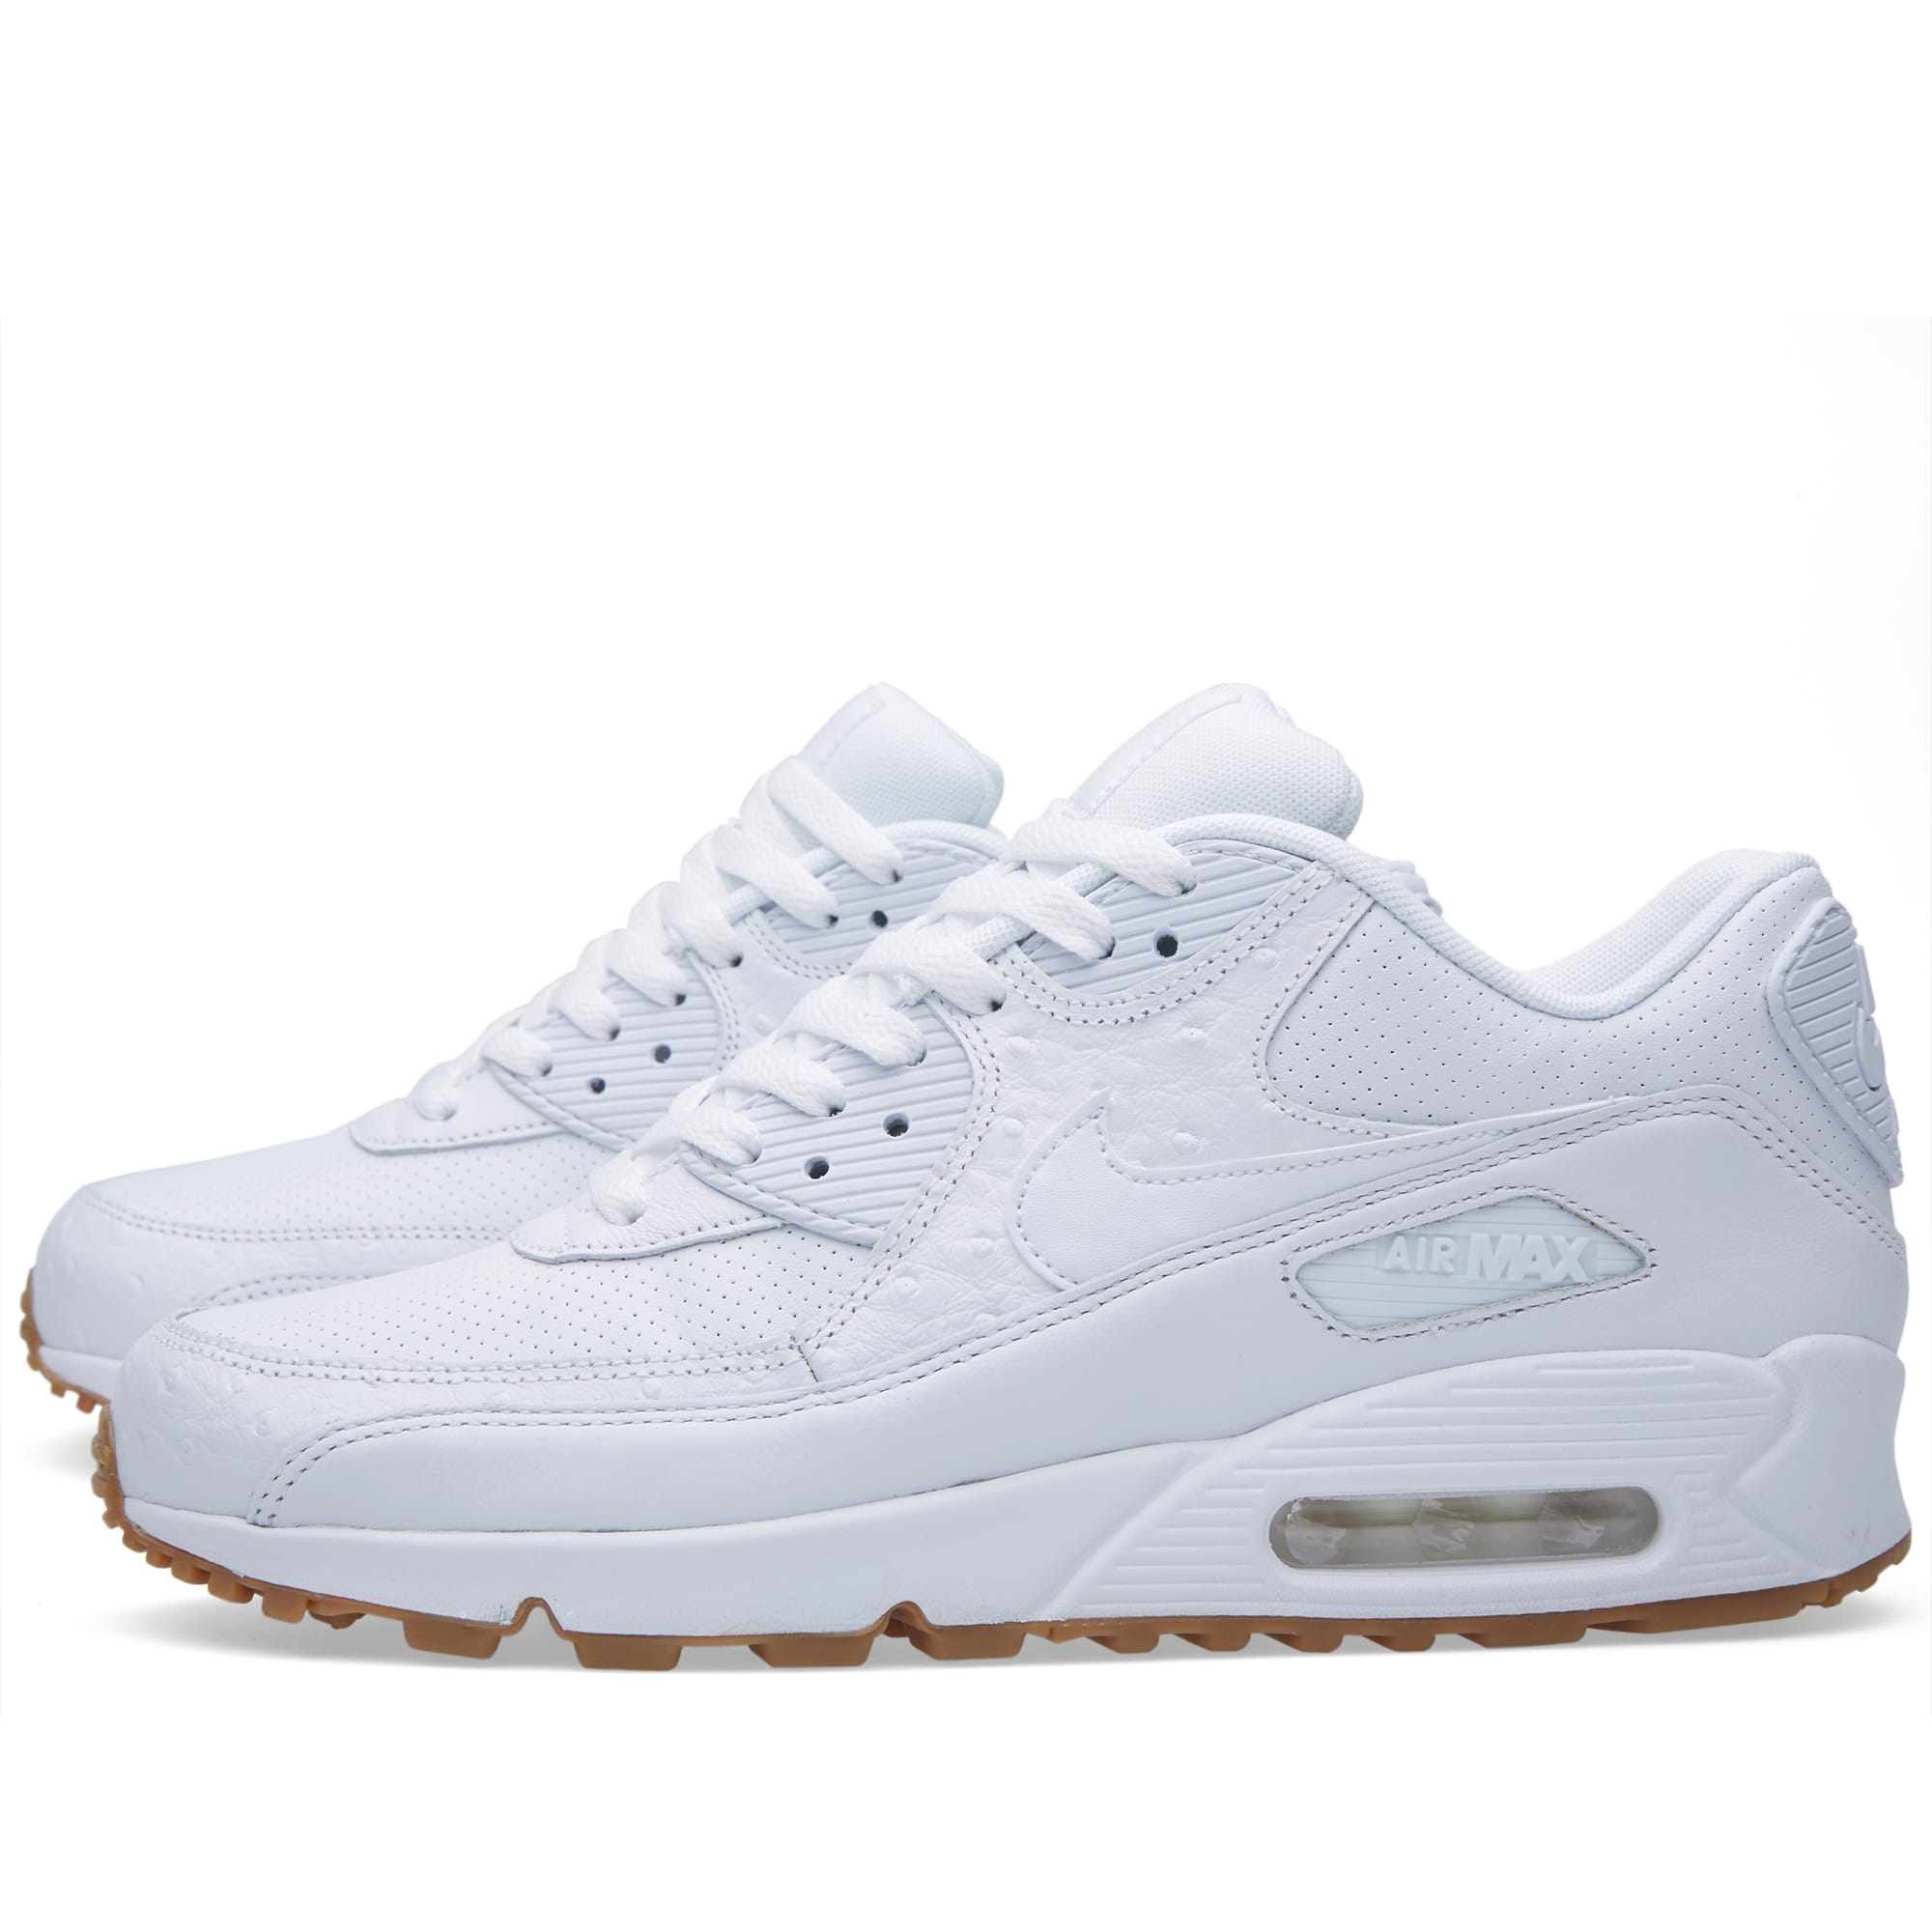 Air Max 90 Leather Pa Ostrich Nike 705012 111 white